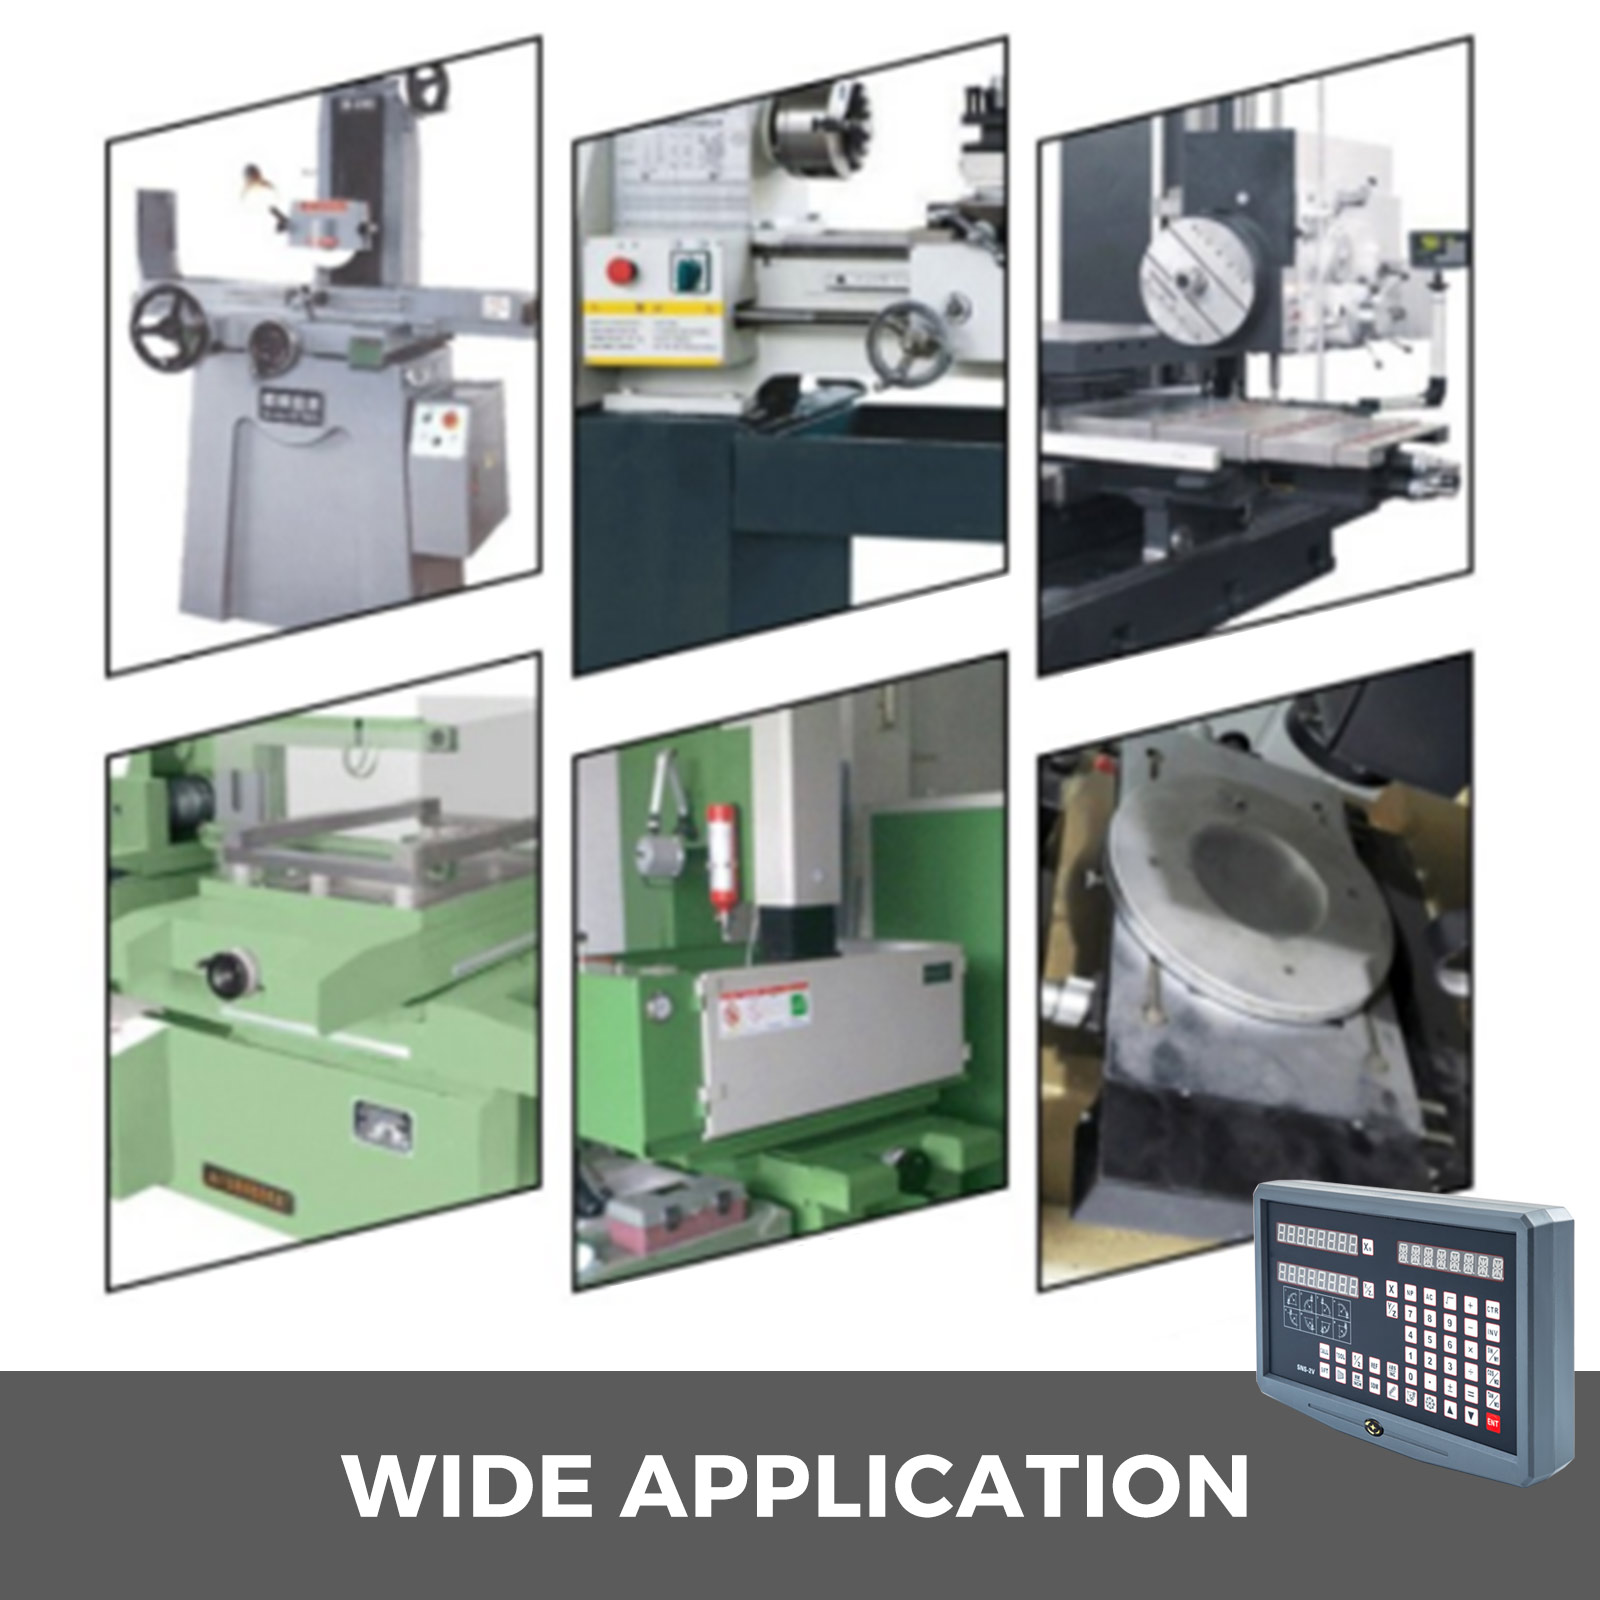 2-3-Axis-Digital-Readout-Linear-Scale-Double-Seal-5-Bearing-System-Grinding thumbnail 255